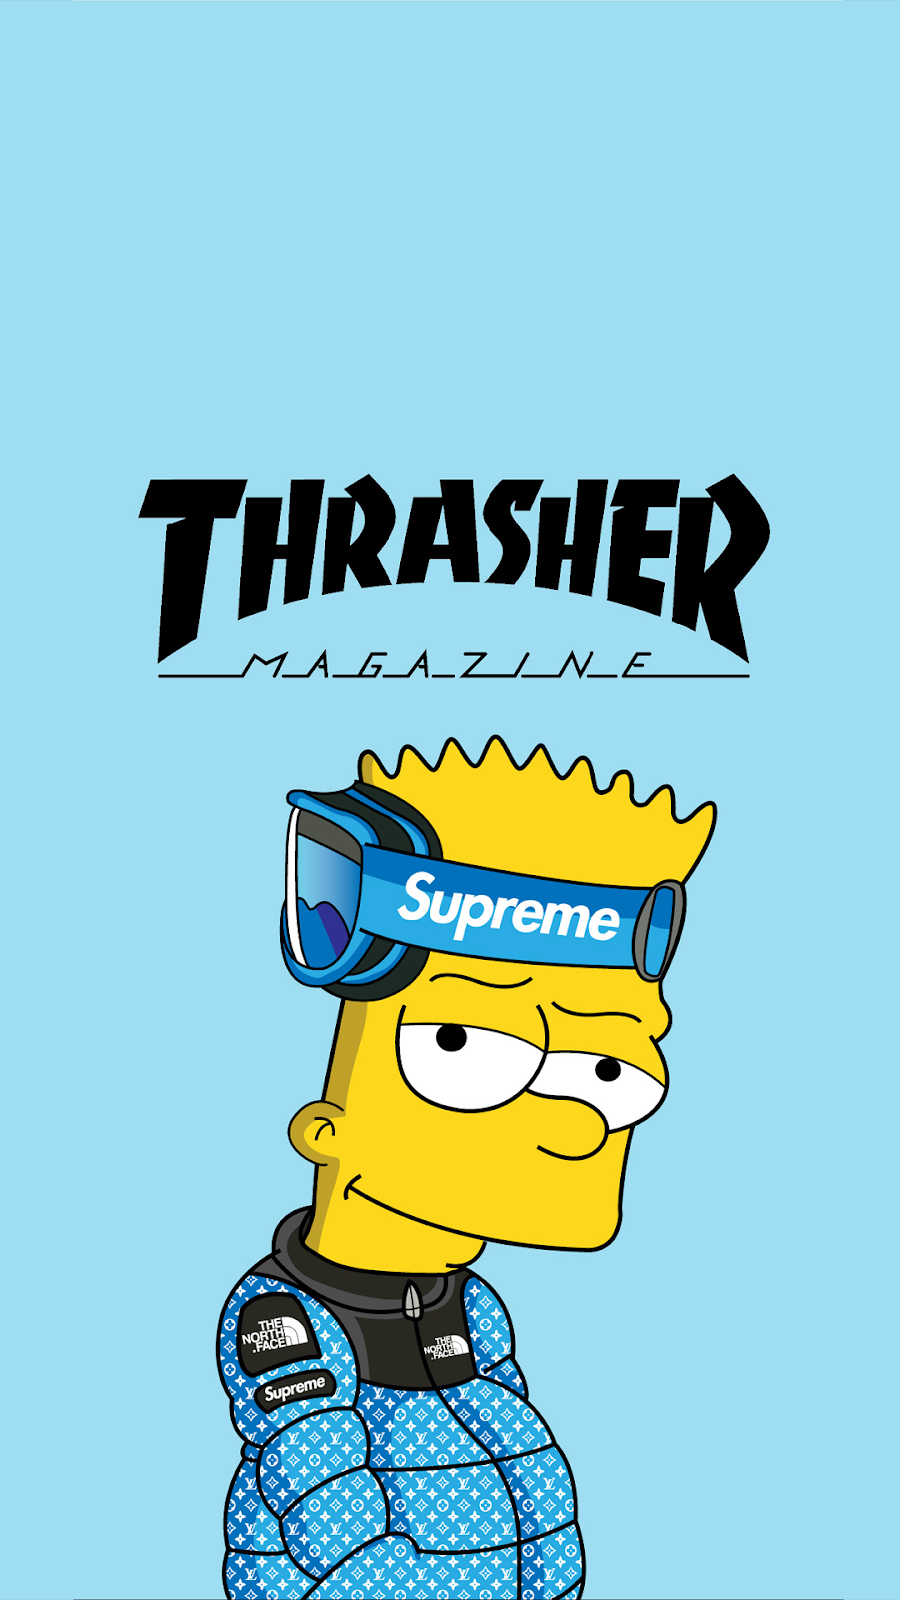 Pin By Titit Juntuurang On Fotos Dos Simpsons In 2020 Supreme Iphone Wallpaper Bart Simpson Art Simpson Wallpaper Iphone